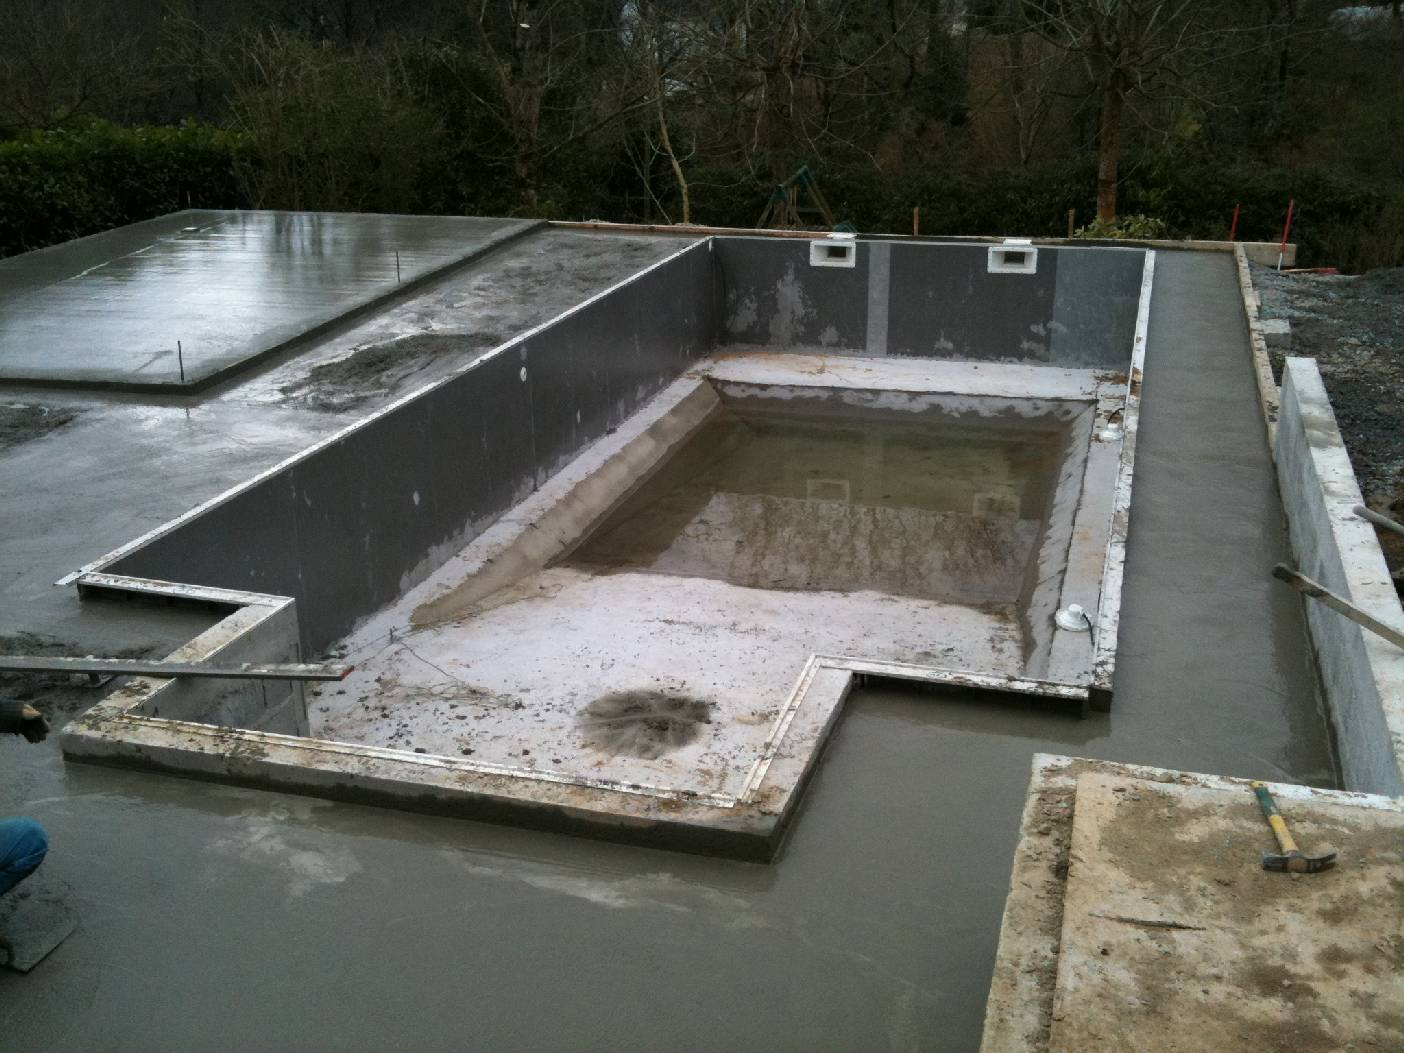 Abords De Piscine Aménagement Des Abords D Une Piscine à Quimper Goalabre Construction